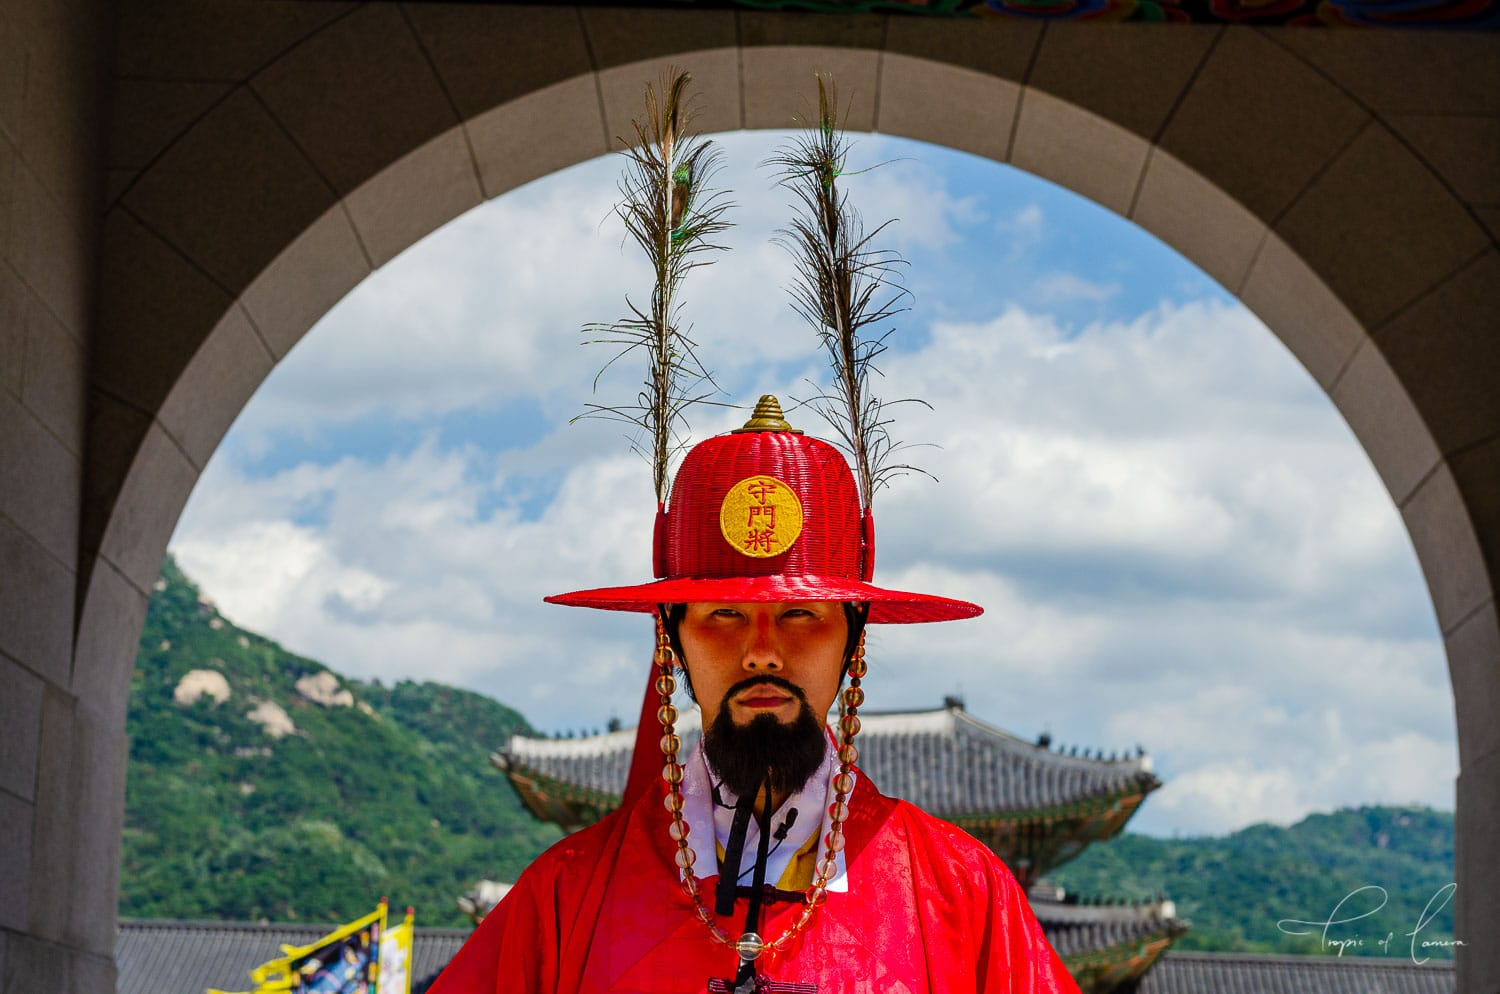 Guard in traditional costume at Gyeongbokgung Palace, South Korea